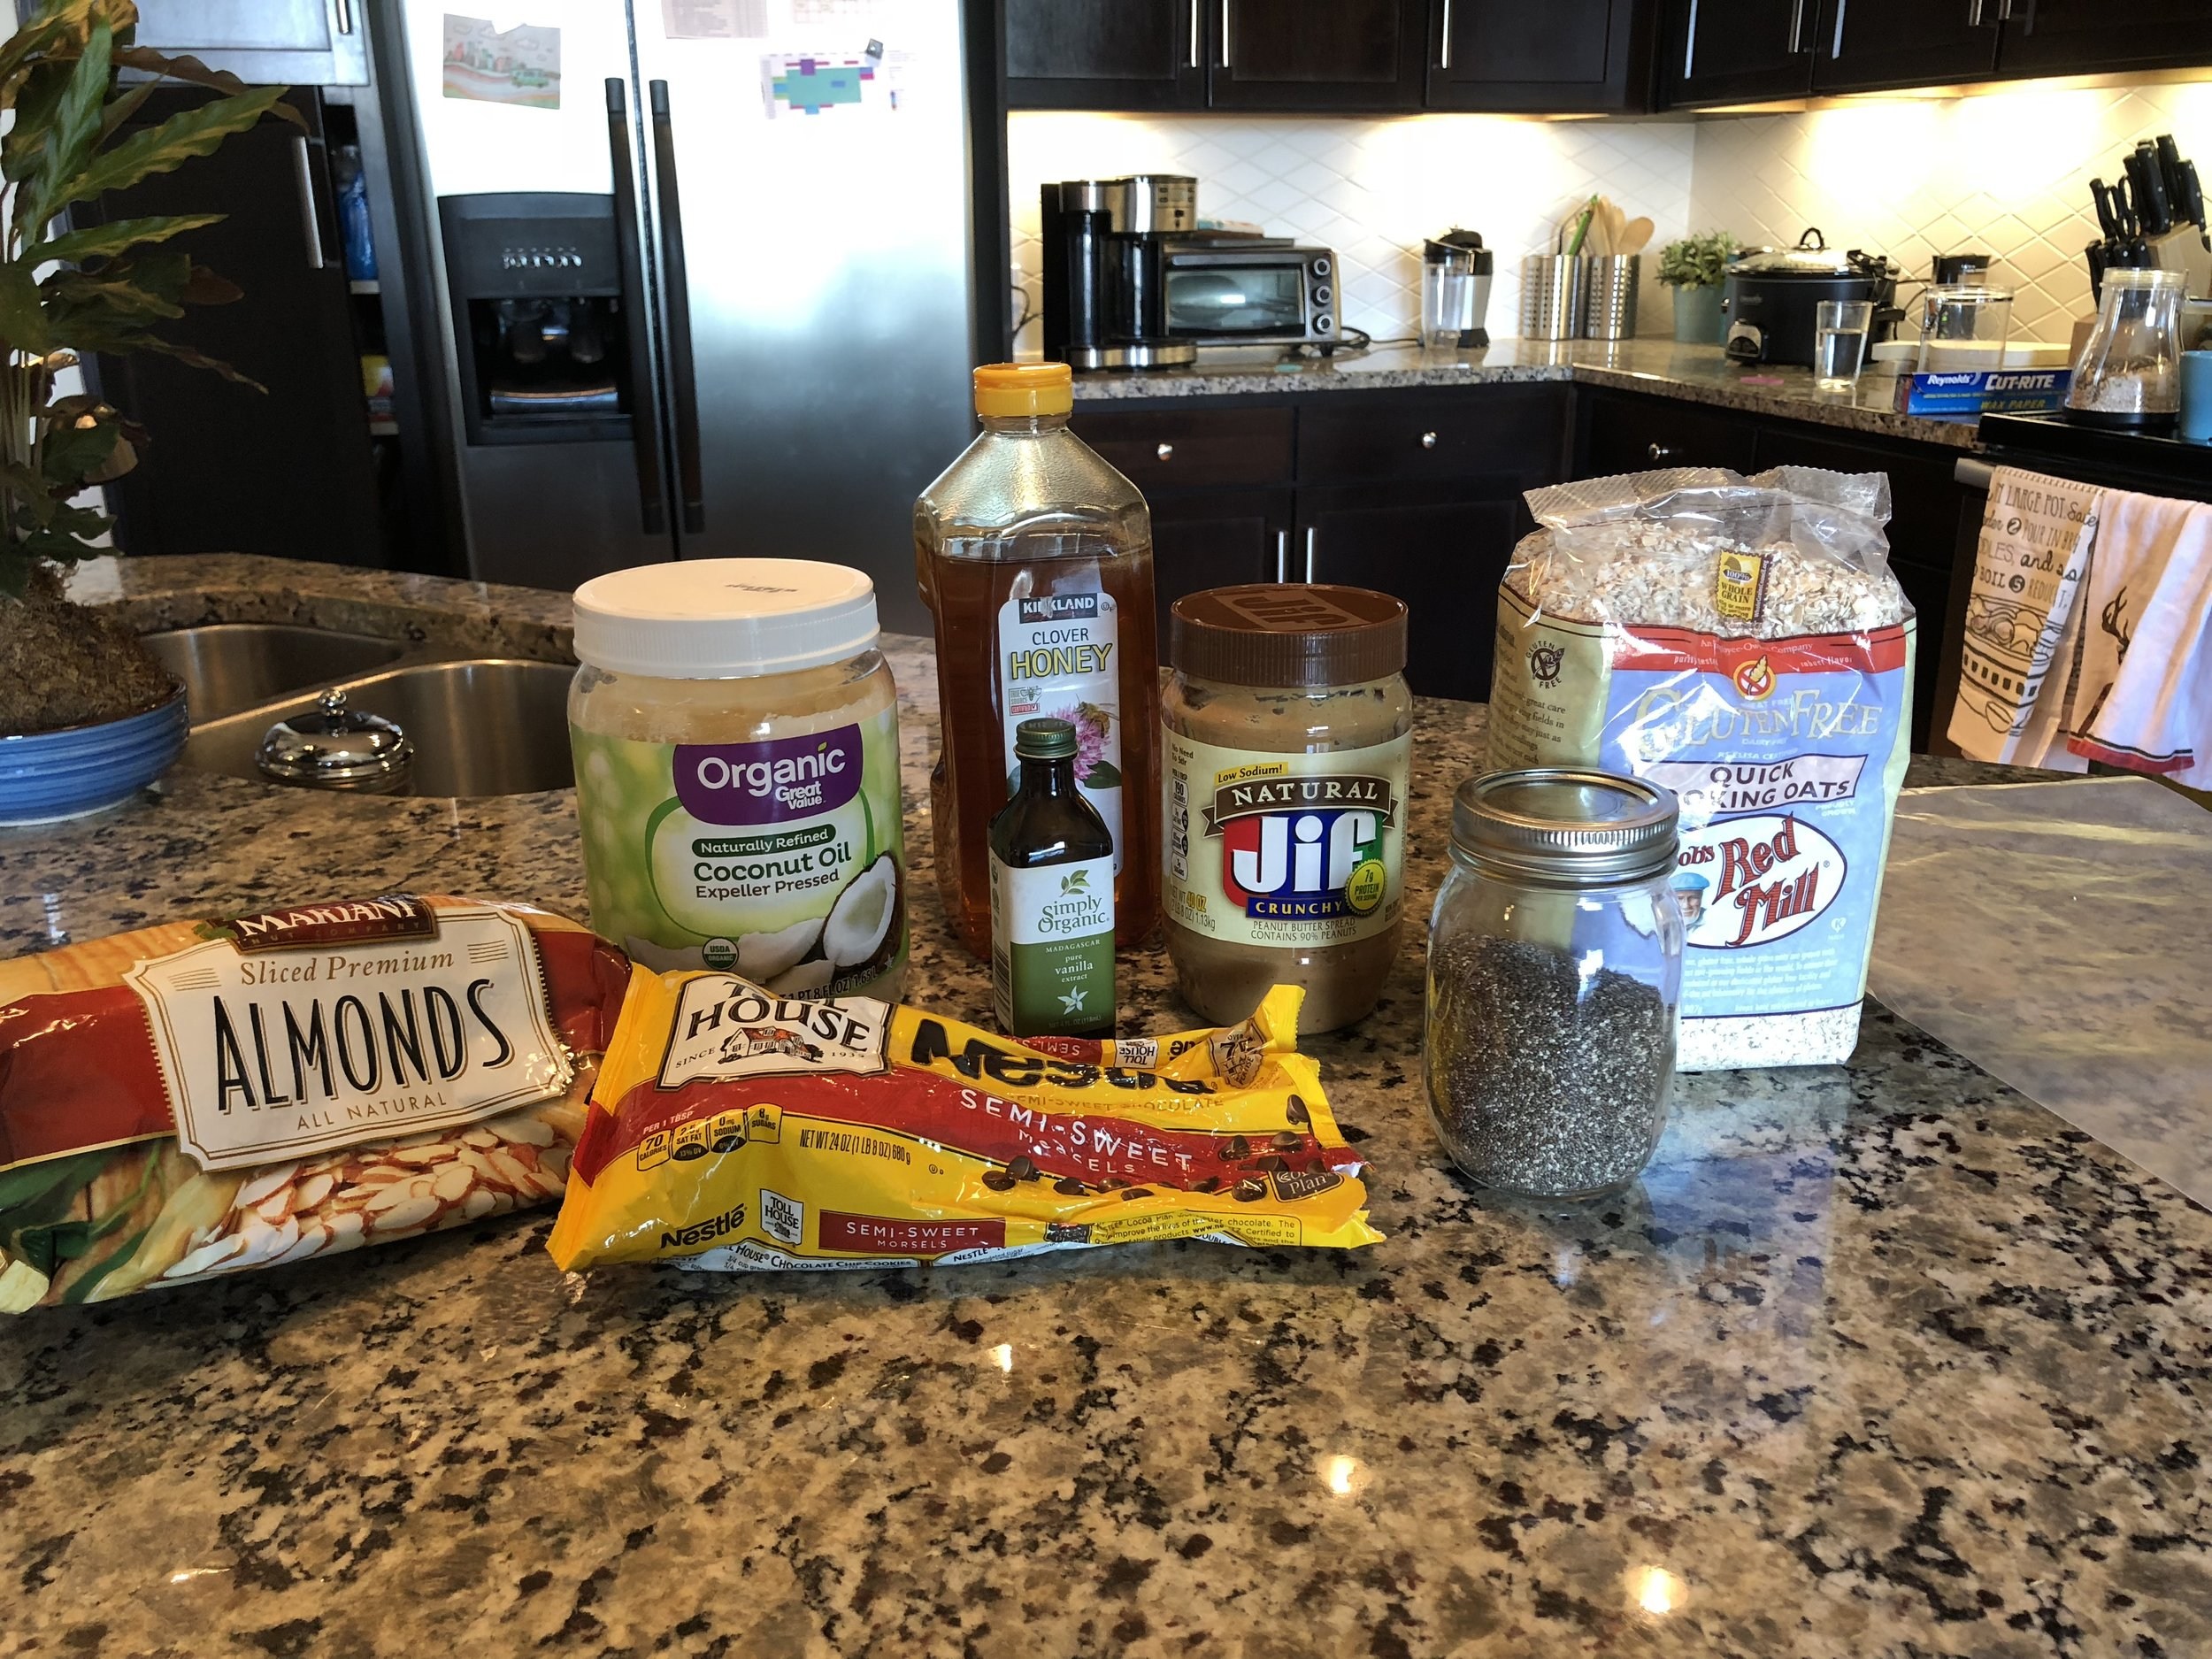 All the ingredients that will go into today's granola bar recipe.